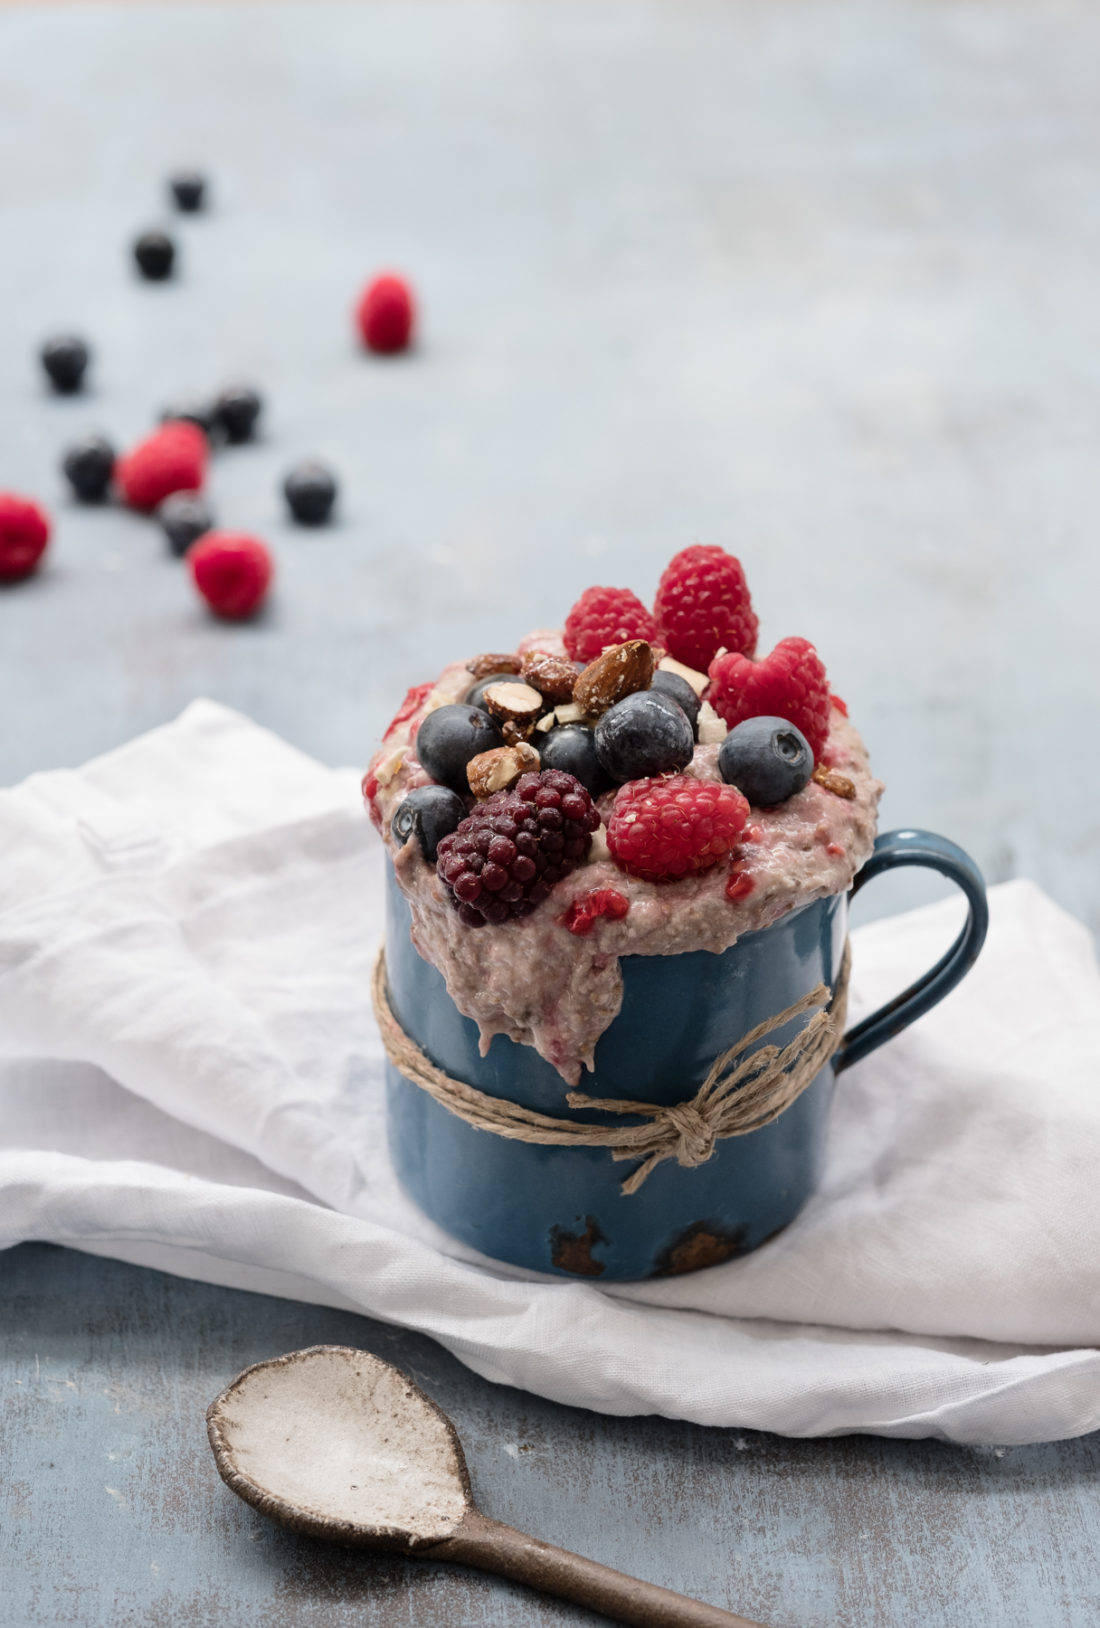 Chia Pudding Foodfotografie & Styling